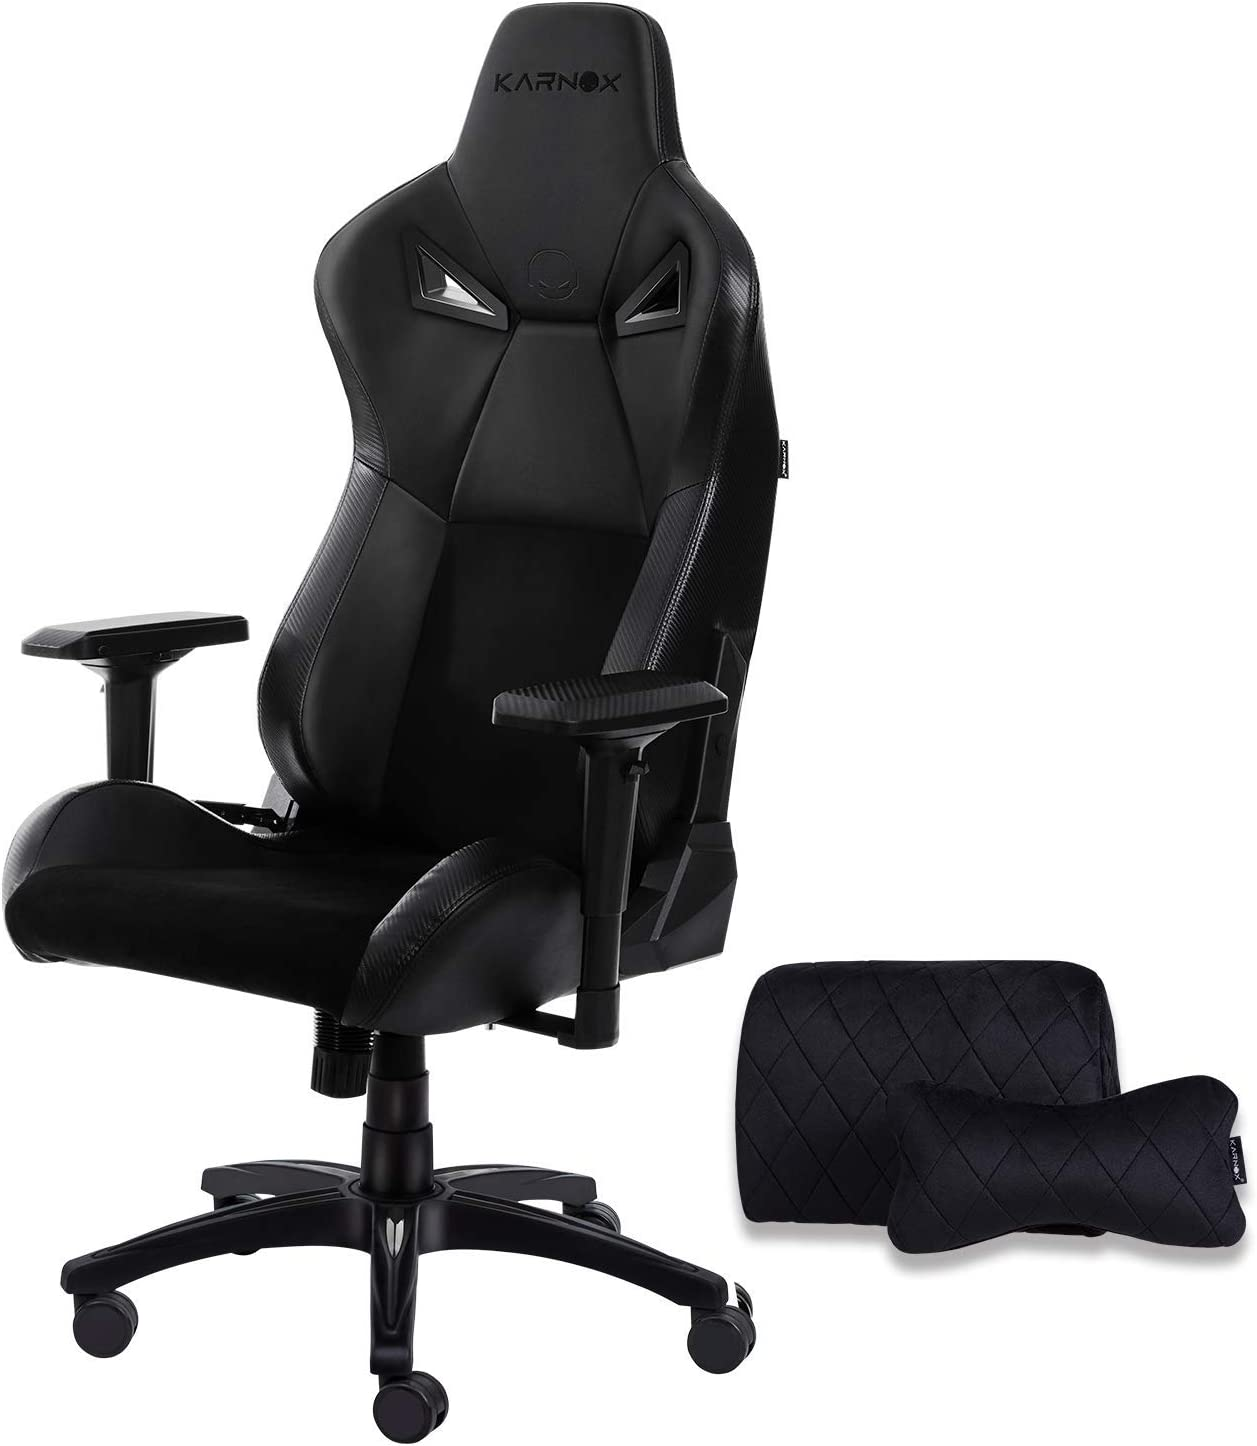 KARNOX BK Gaming/Office Chair with 155º Recline PU&Suede Leather Racing Chair High Back Chair Executive and Ergonomic Style Swivel Chair with Headrest and Lumbar Support(LegendBK-Black)…